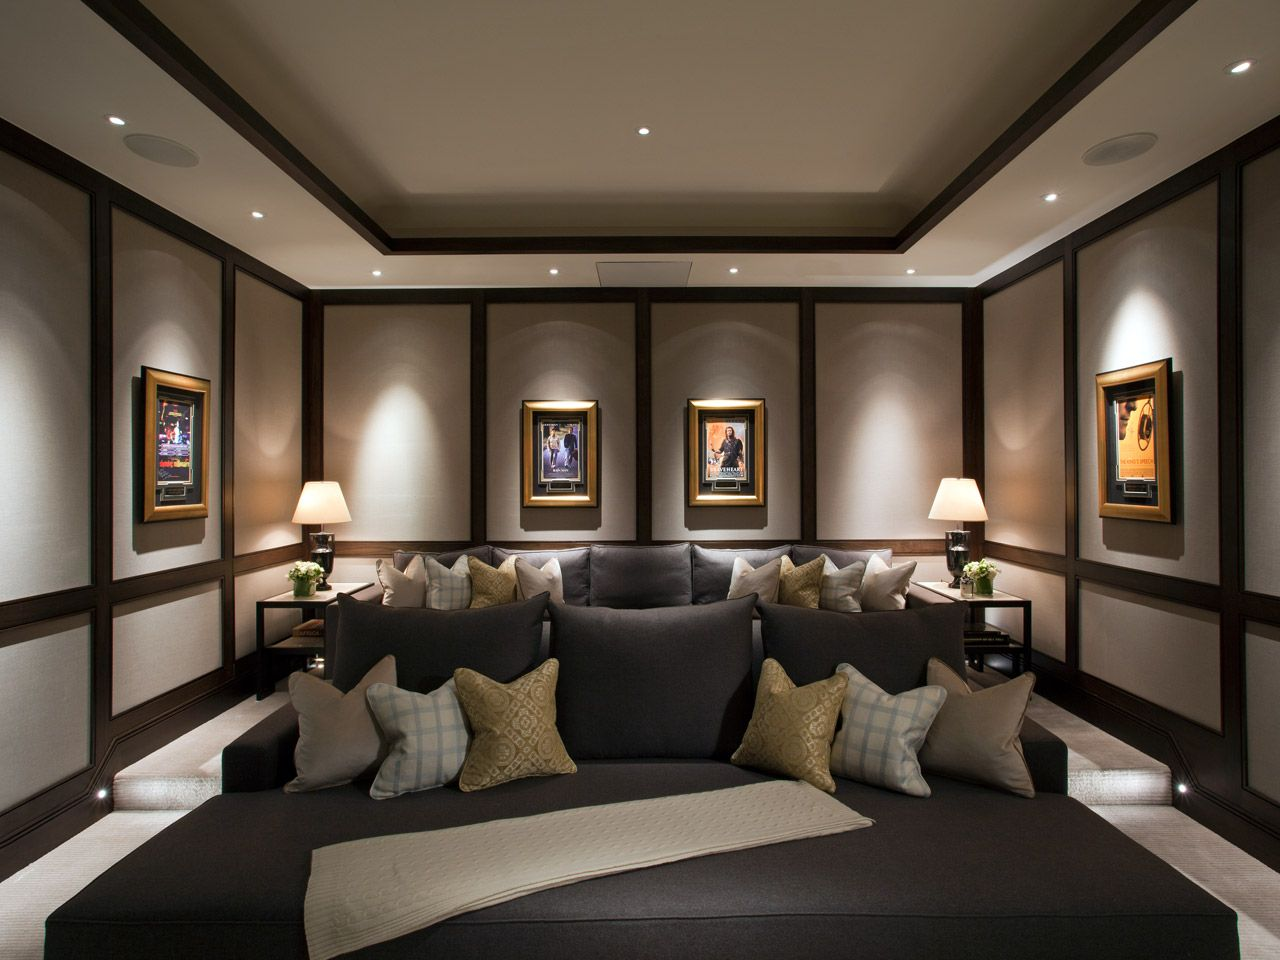 knightsbridge mews london finchatton home cinema. Black Bedroom Furniture Sets. Home Design Ideas